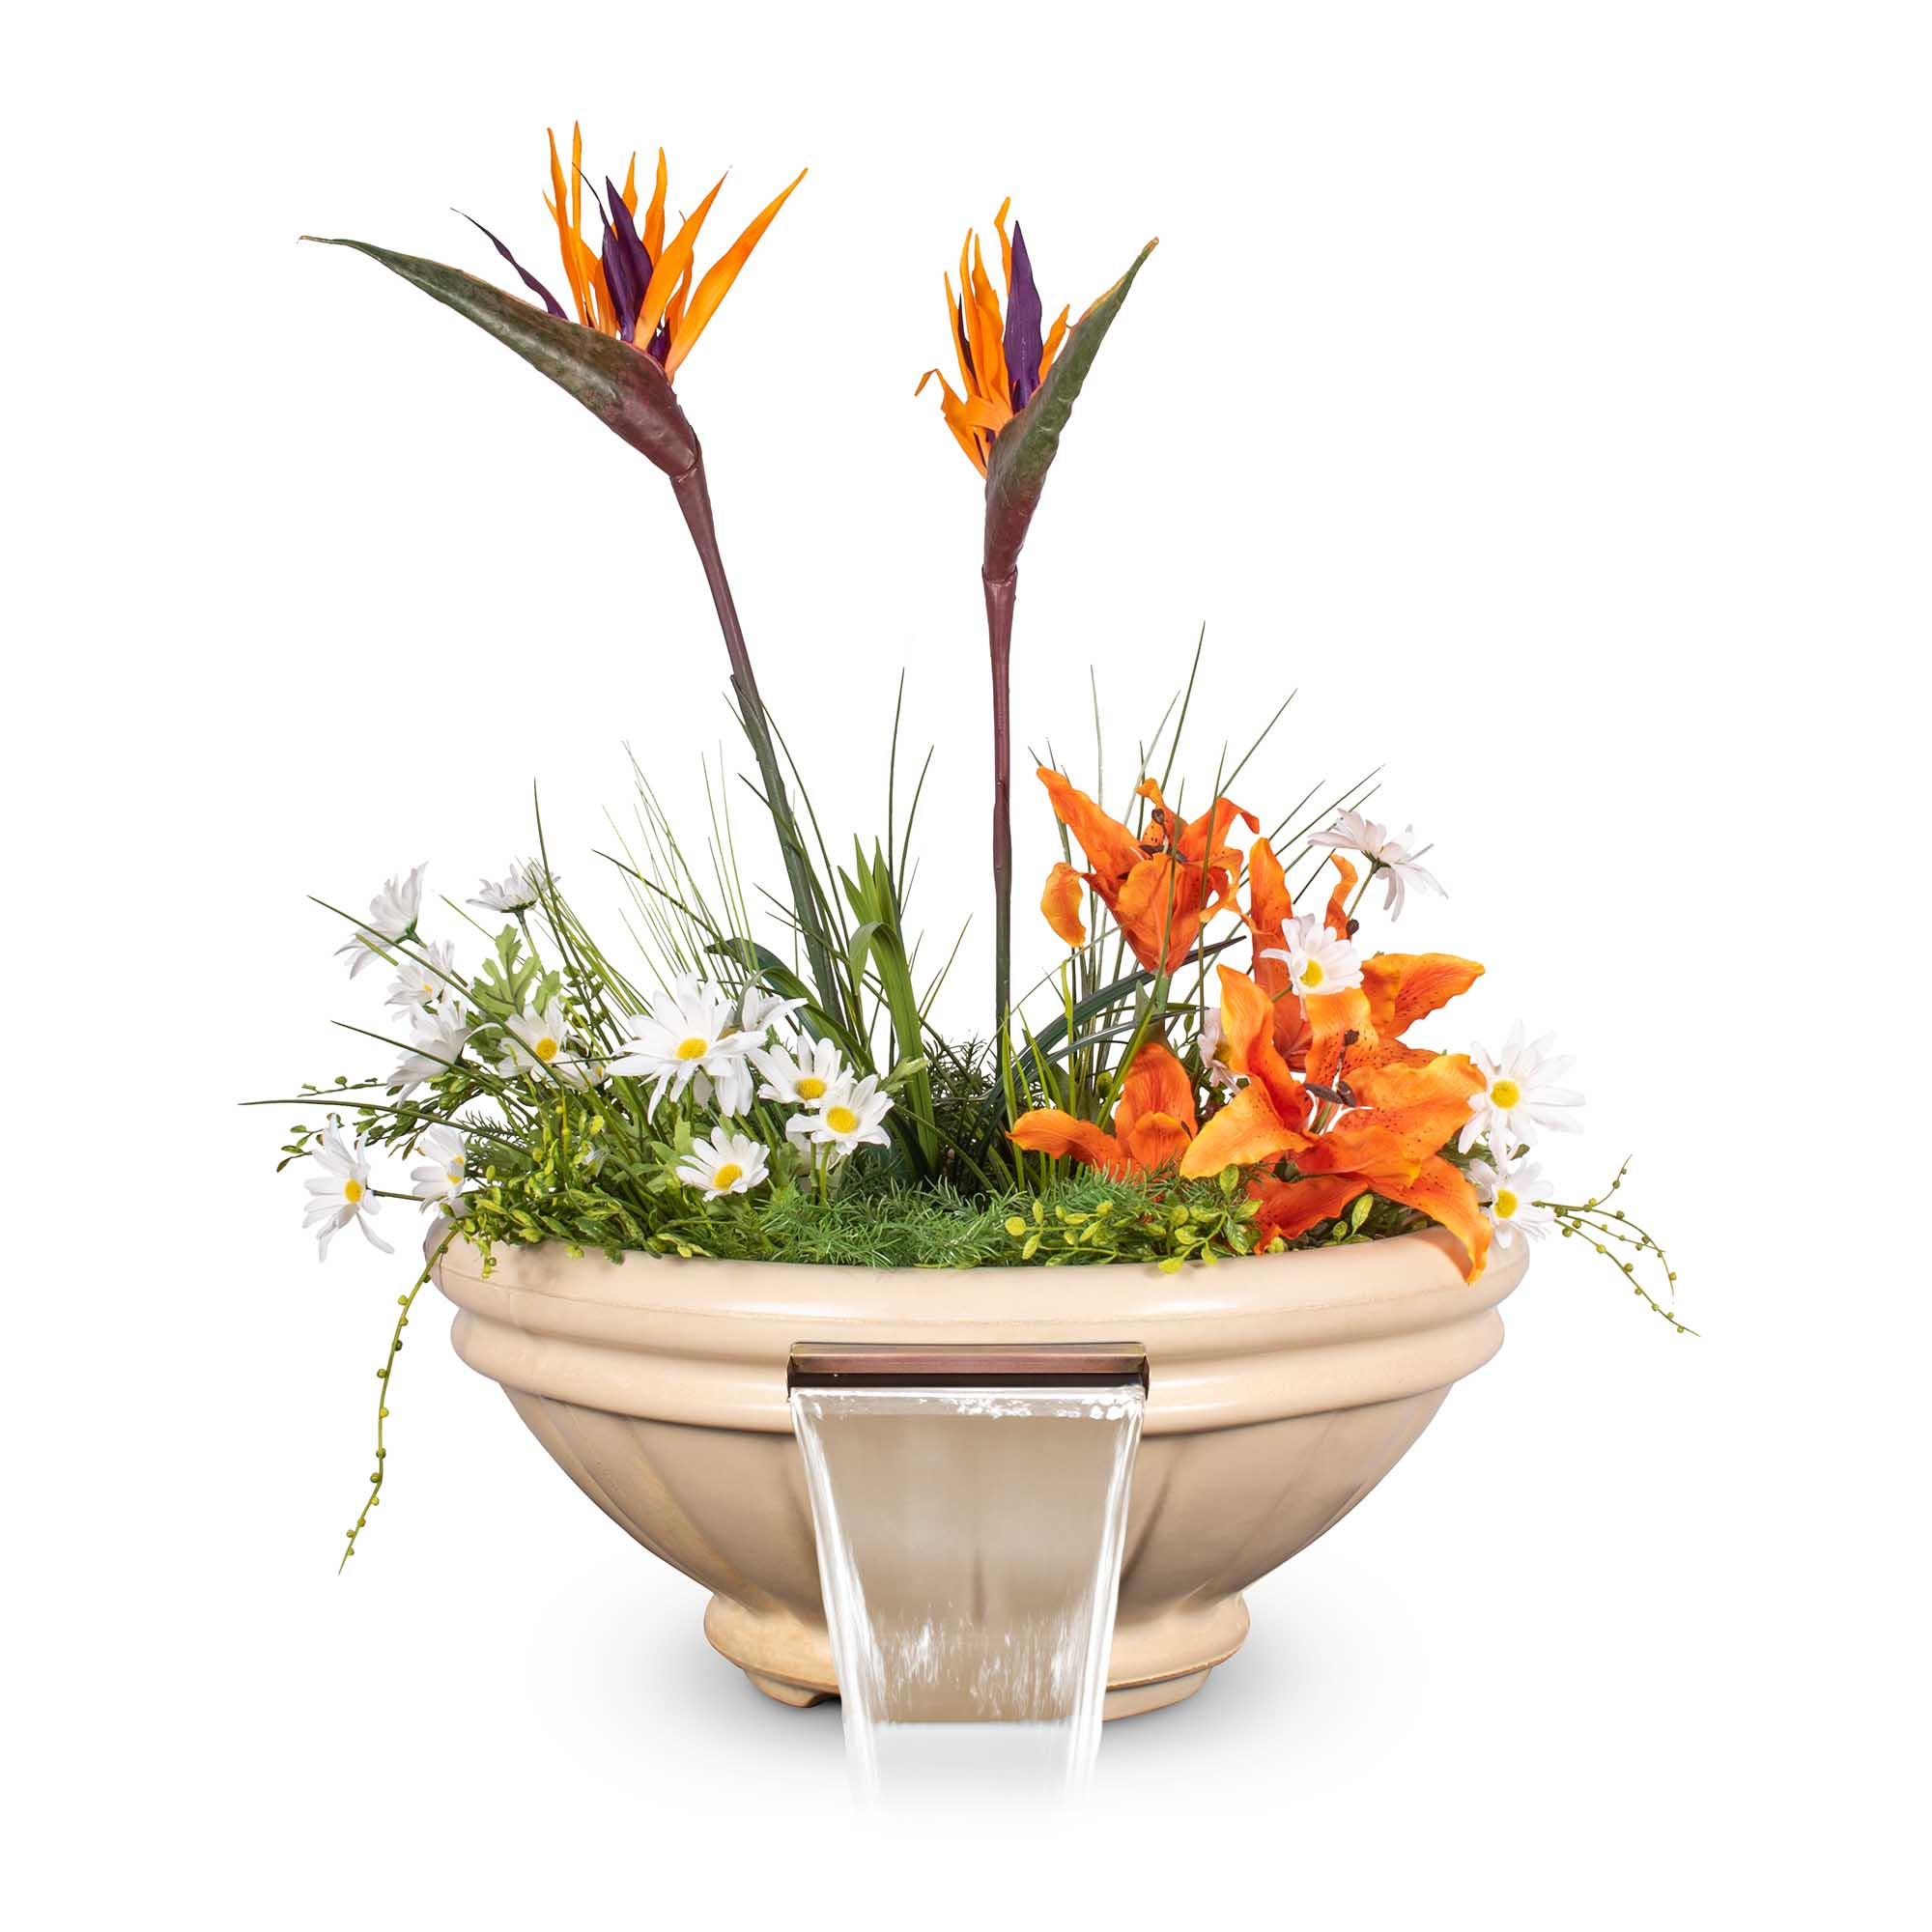 Roma GFRC Planter Water Bowl - Vanilla